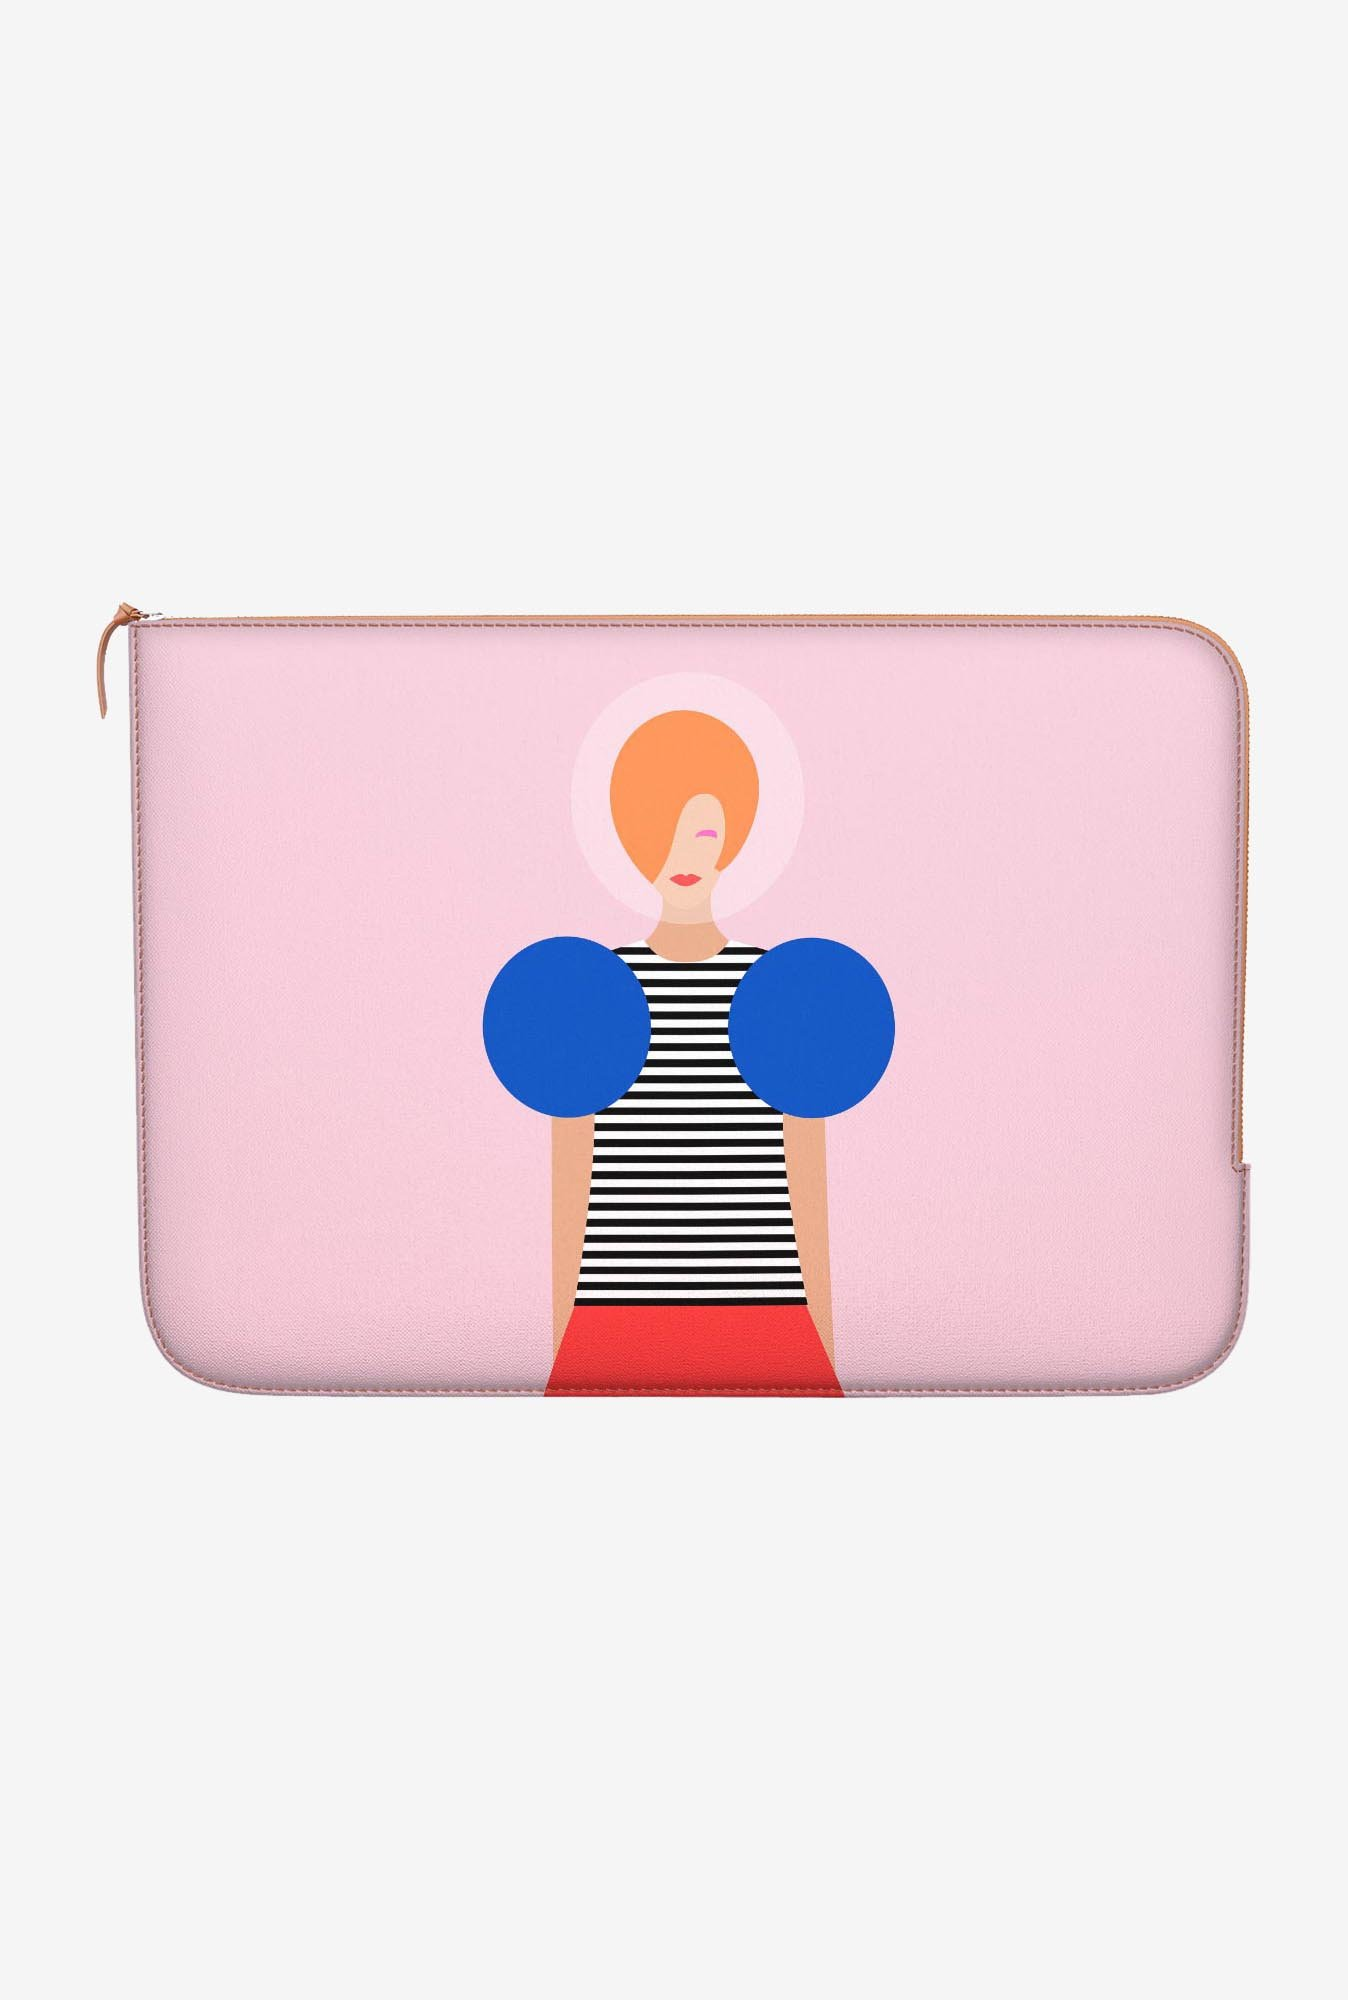 DailyObjects Watanabe Ramp MacBook Pro 15 Zippered Sleeve